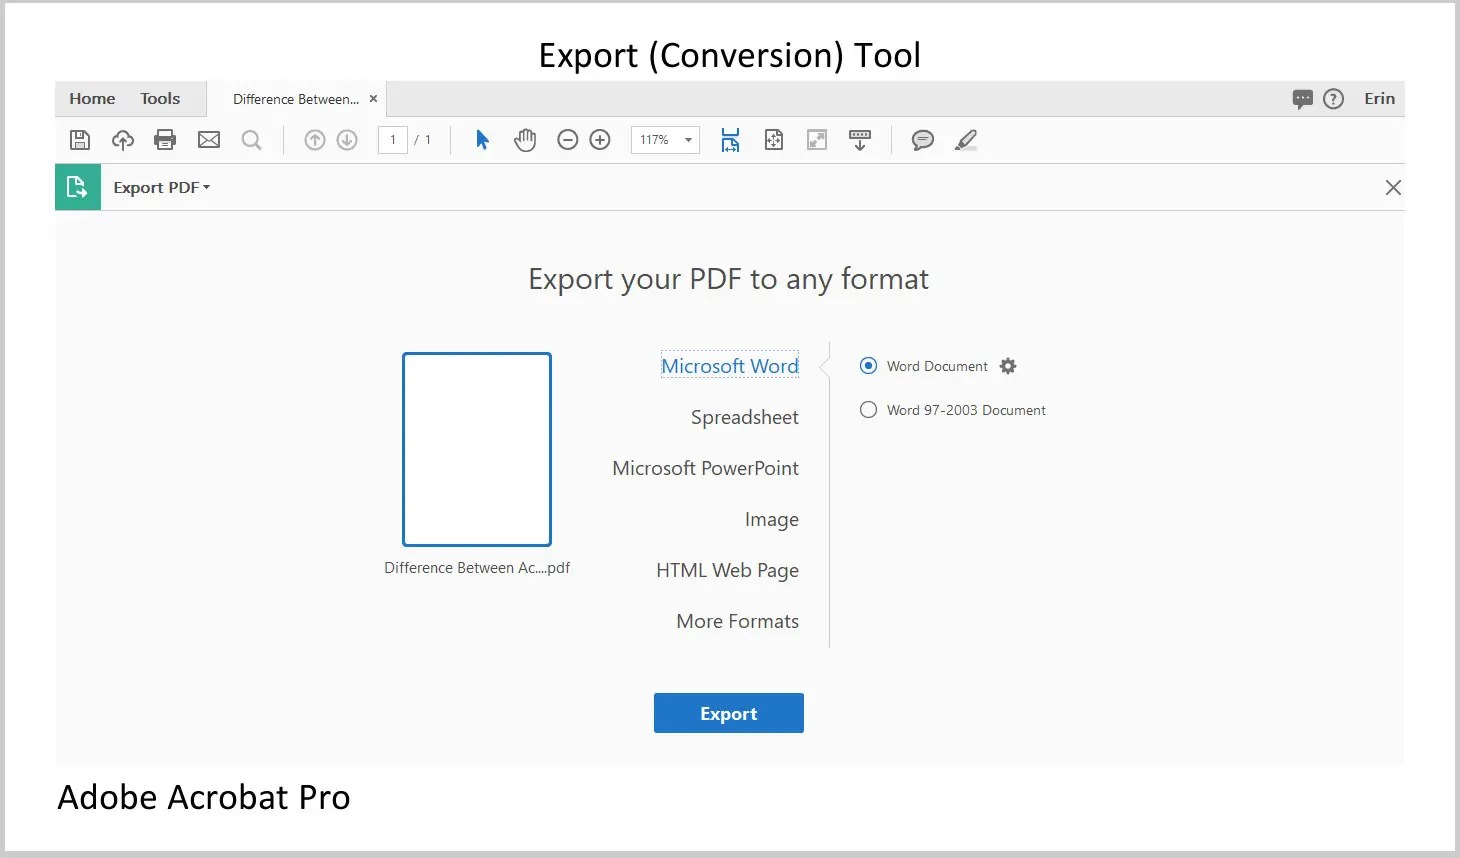 Adobe Acrobat Pro Export Tool | Three Differences between Acrobat Reader and Acrobat Pro